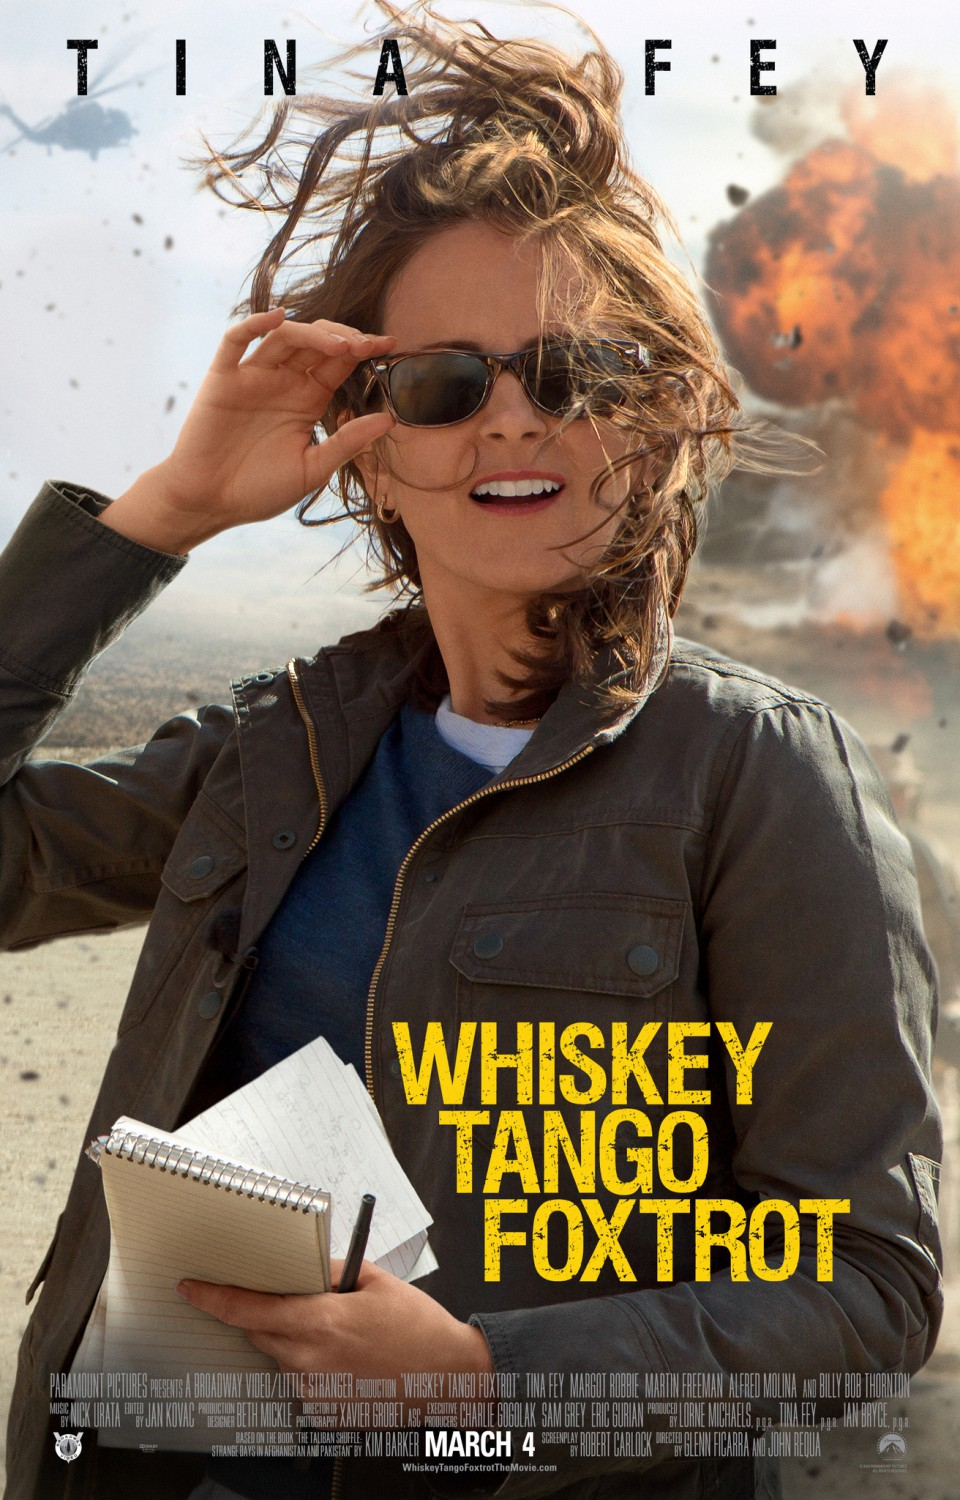 | Film Title   Whiskey Tango Foxtrot   | Directors  Glenn Ficarra, John Requa.  | Writers  Robert Carlock.  | Based on   The Taliban Shuffle  by Kim Barker.  | Starring  Tina Fey, Margot Robbie, Martin Freeman.  | Release Date  March 4, 2016 (US).  | Runtime  112 min.